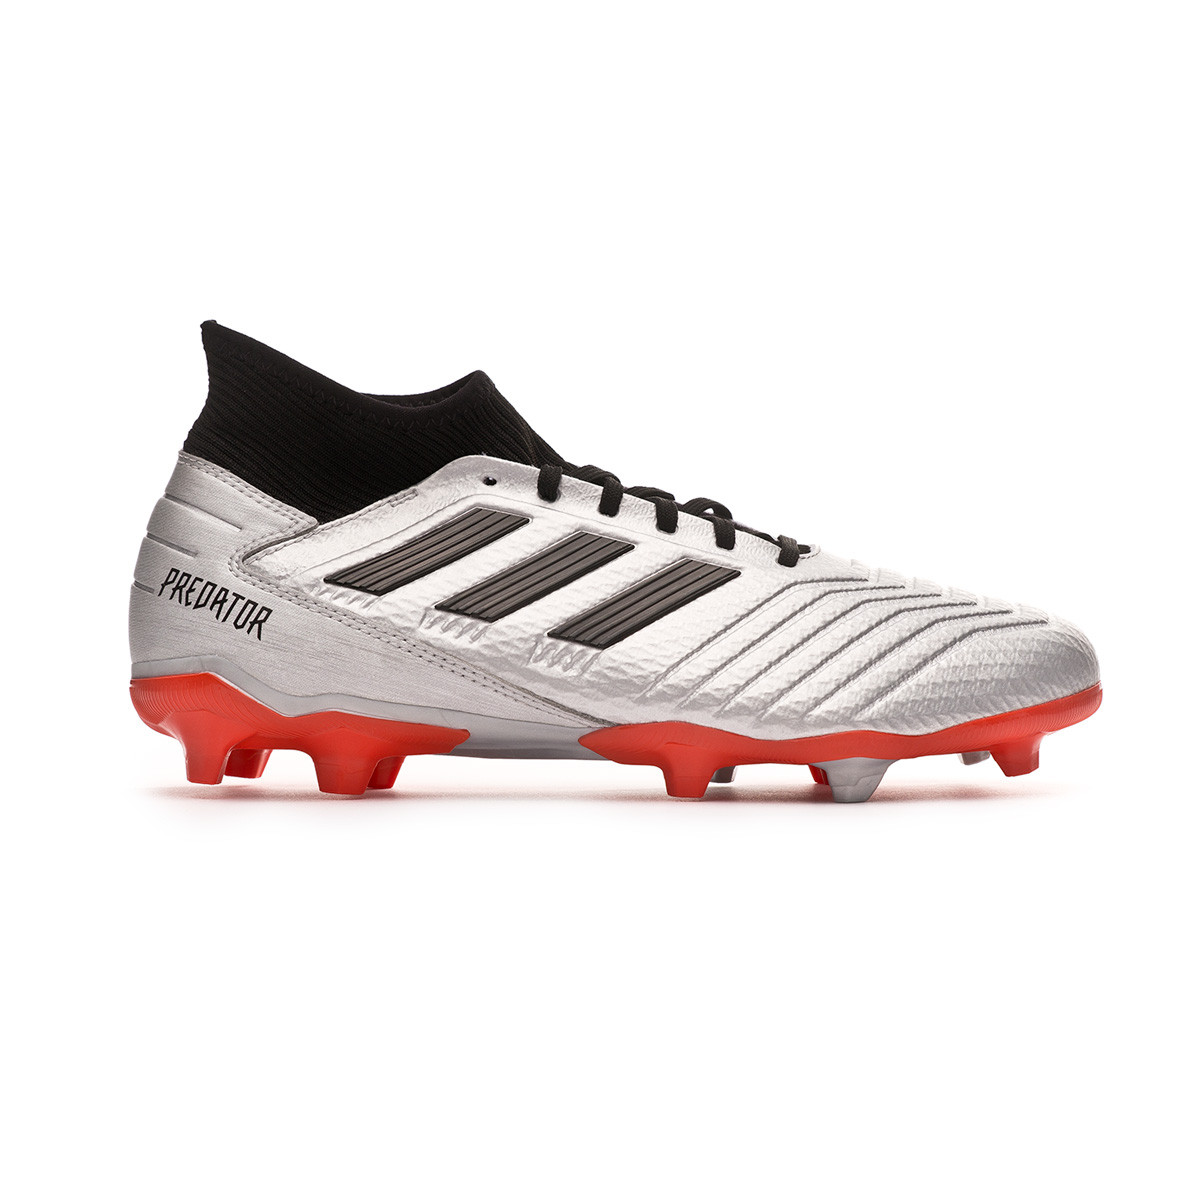 e2af8aaa9b0 Football Boots adidas Predator 19.3 FG Silver metallic-Core black-Hi red -  Football store Fútbol Emotion